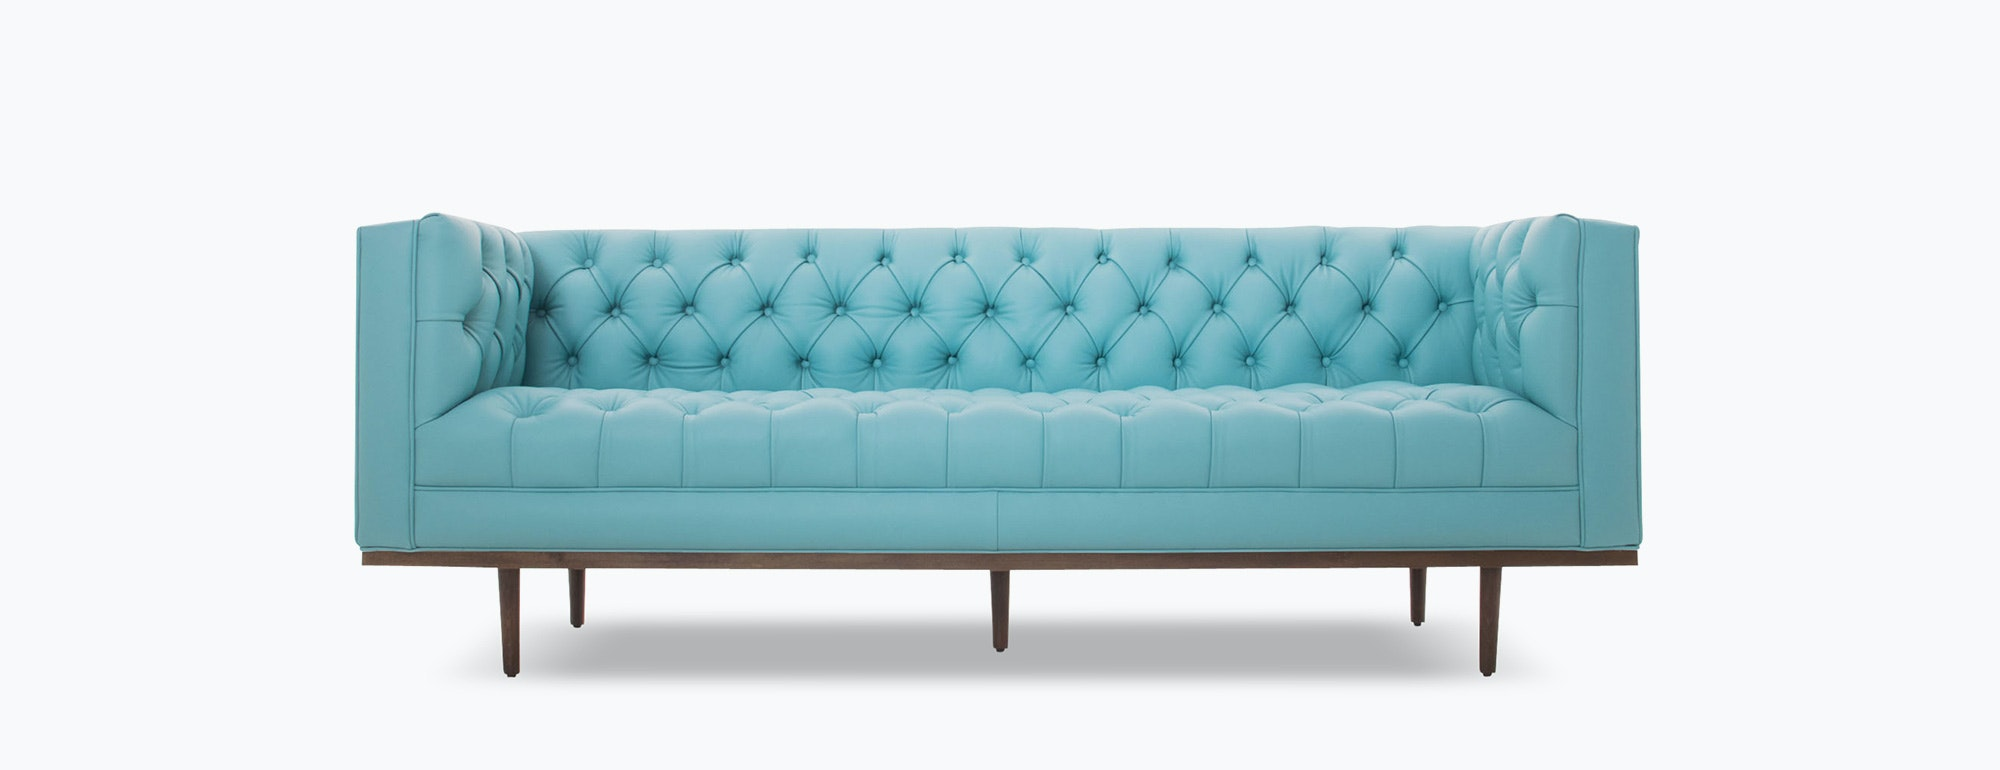 Welles Leather Sofa Joybird